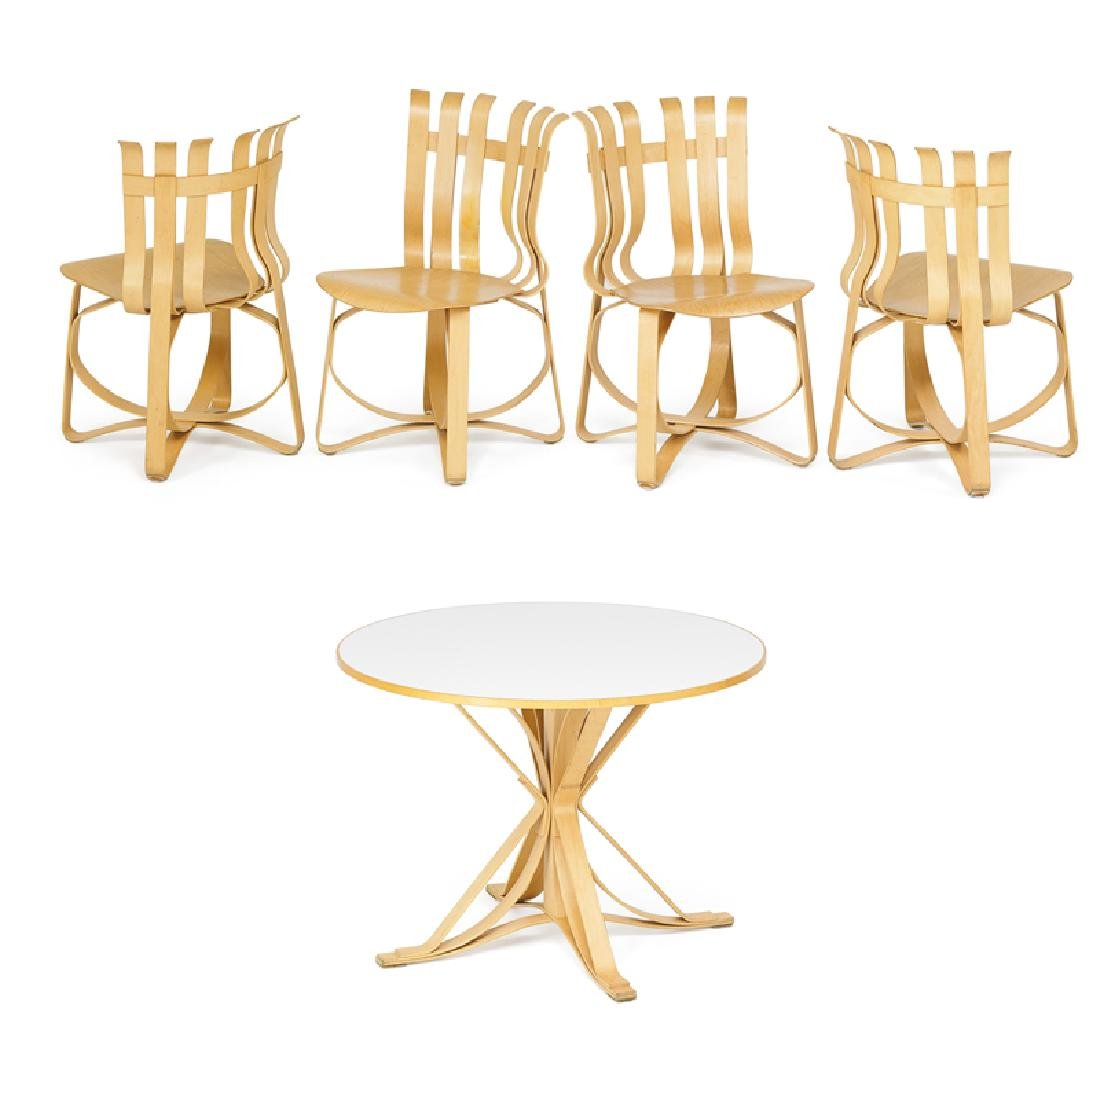 FRANK GEHRY; KNOLL Table and set of four chairs